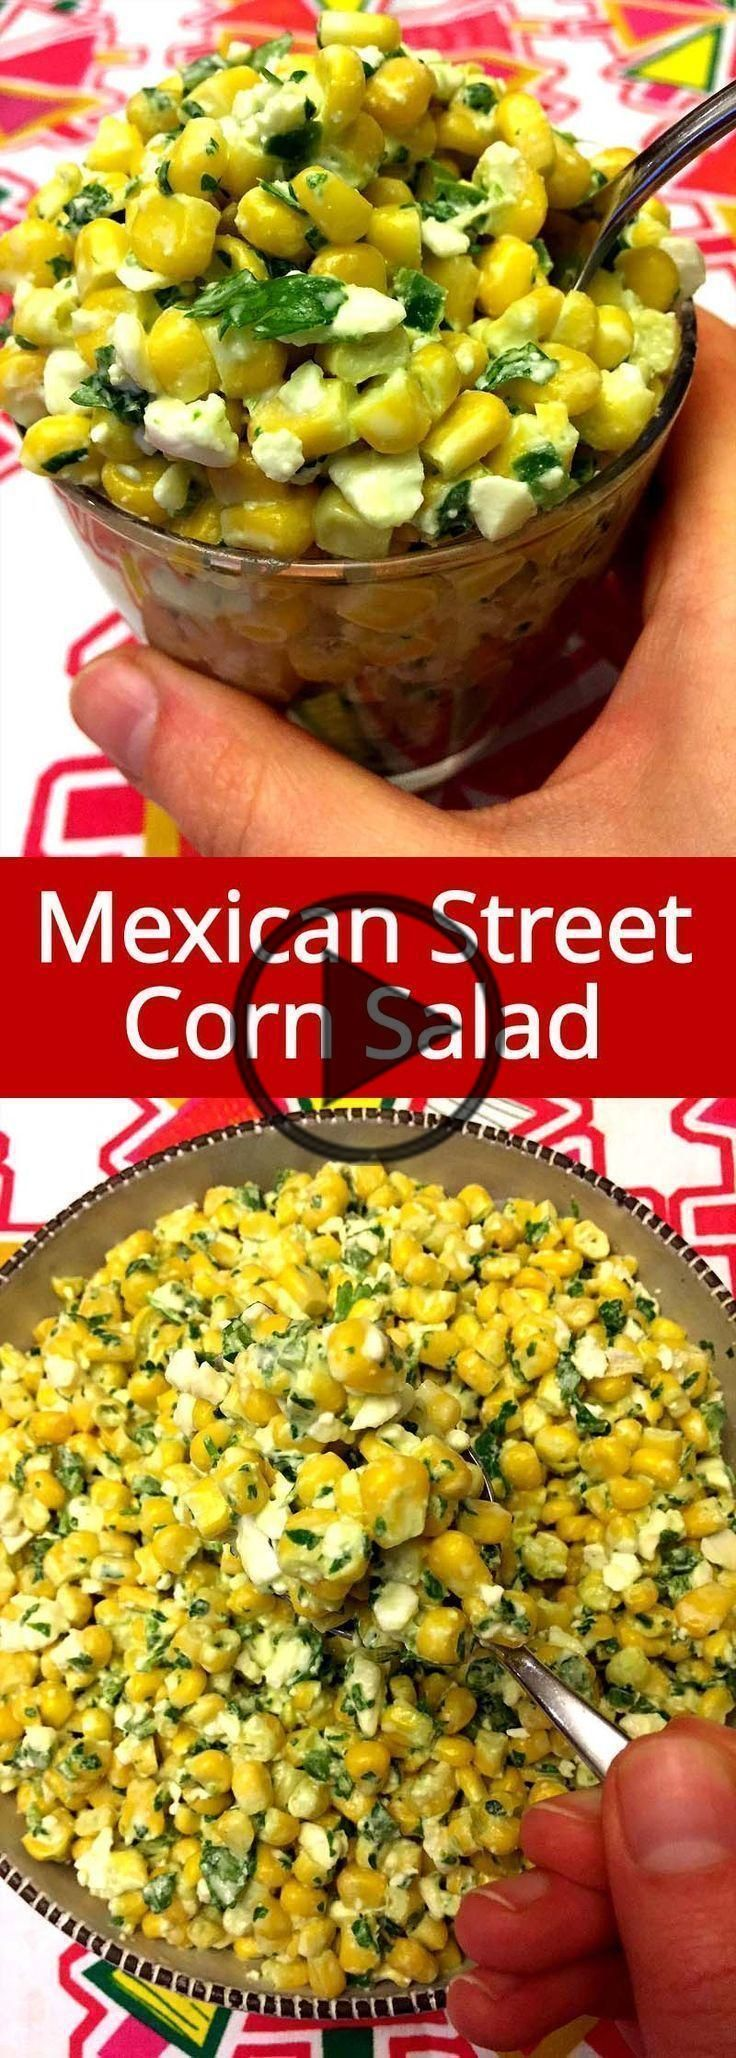 Mexican Street Corn Salad This Mexican street corn salad recipe is amazing! So refreshing and...